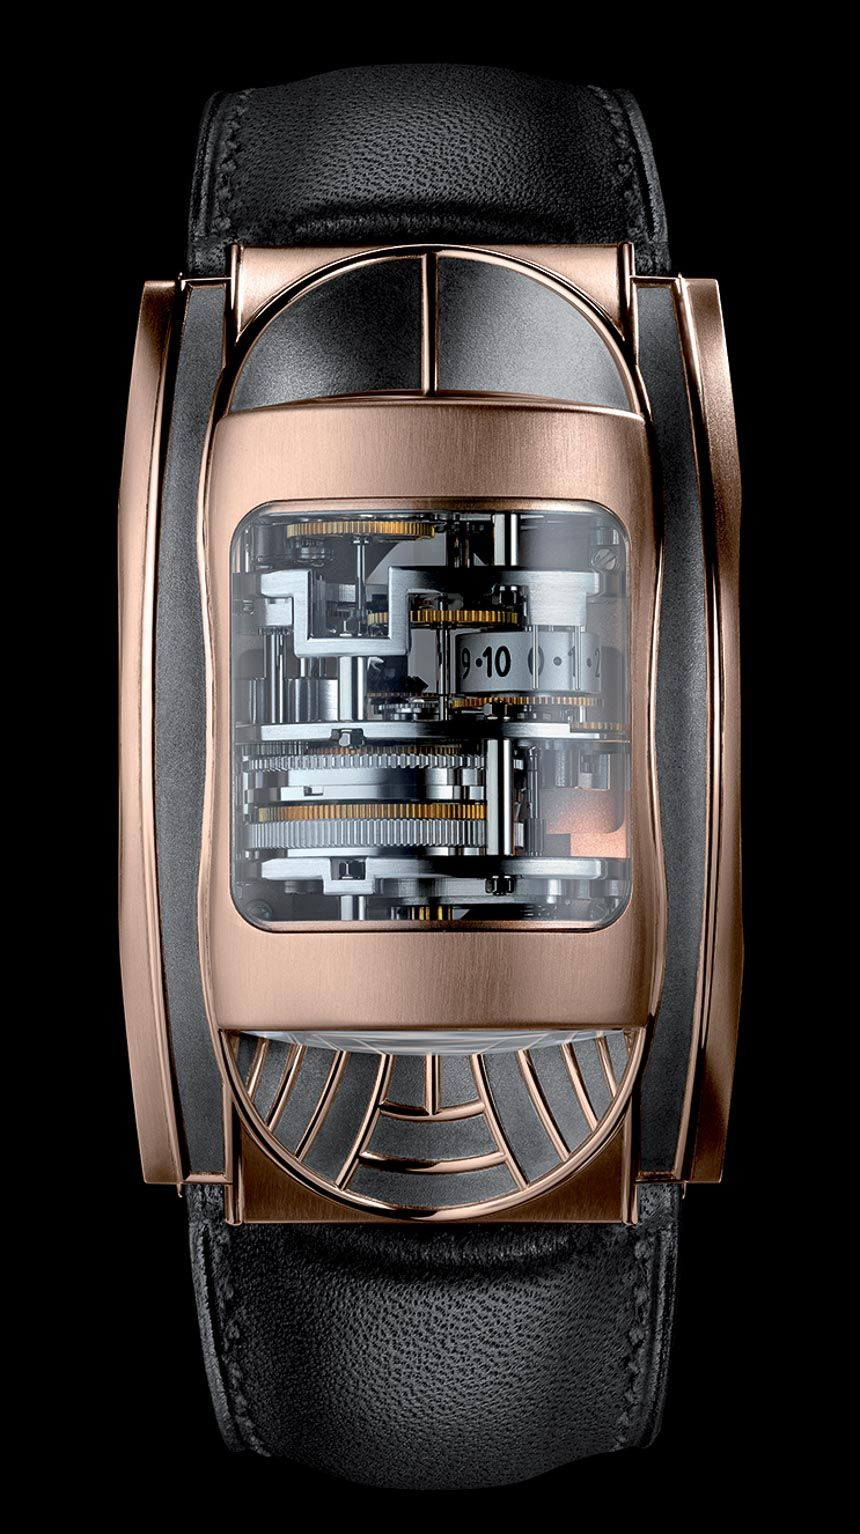 unusual interesting and unique watches artworks nickel silver the parmigiani bugatti mythe timepiece will be one of three piece unique watches unveiled this weekend during the pebble beach auto show events